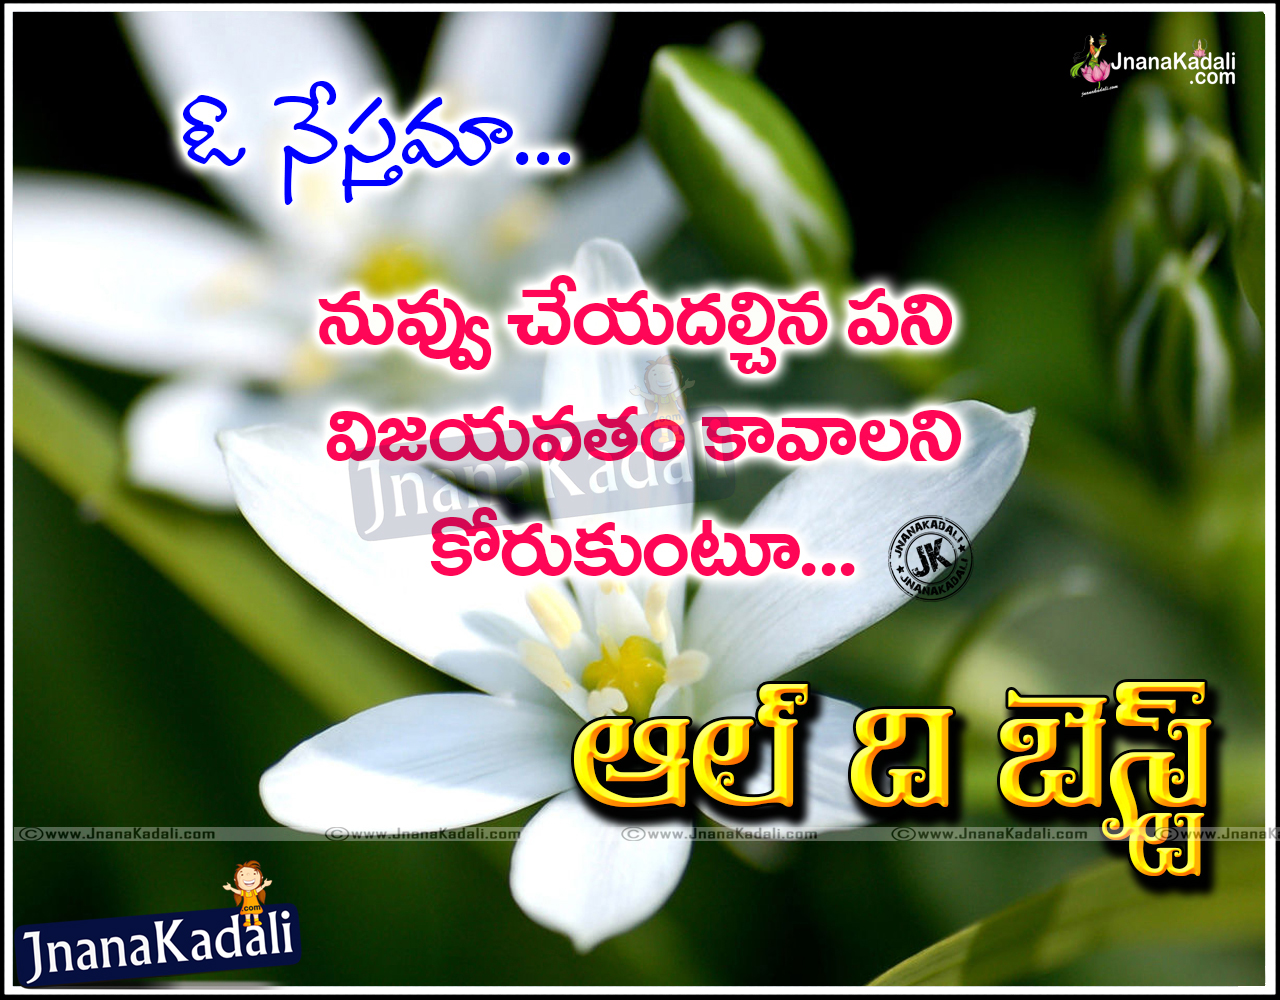 All The Best Quotations For Your Boss In Telugu Language, Top Inspiring All  The Best  Exam Best Wishes Cards